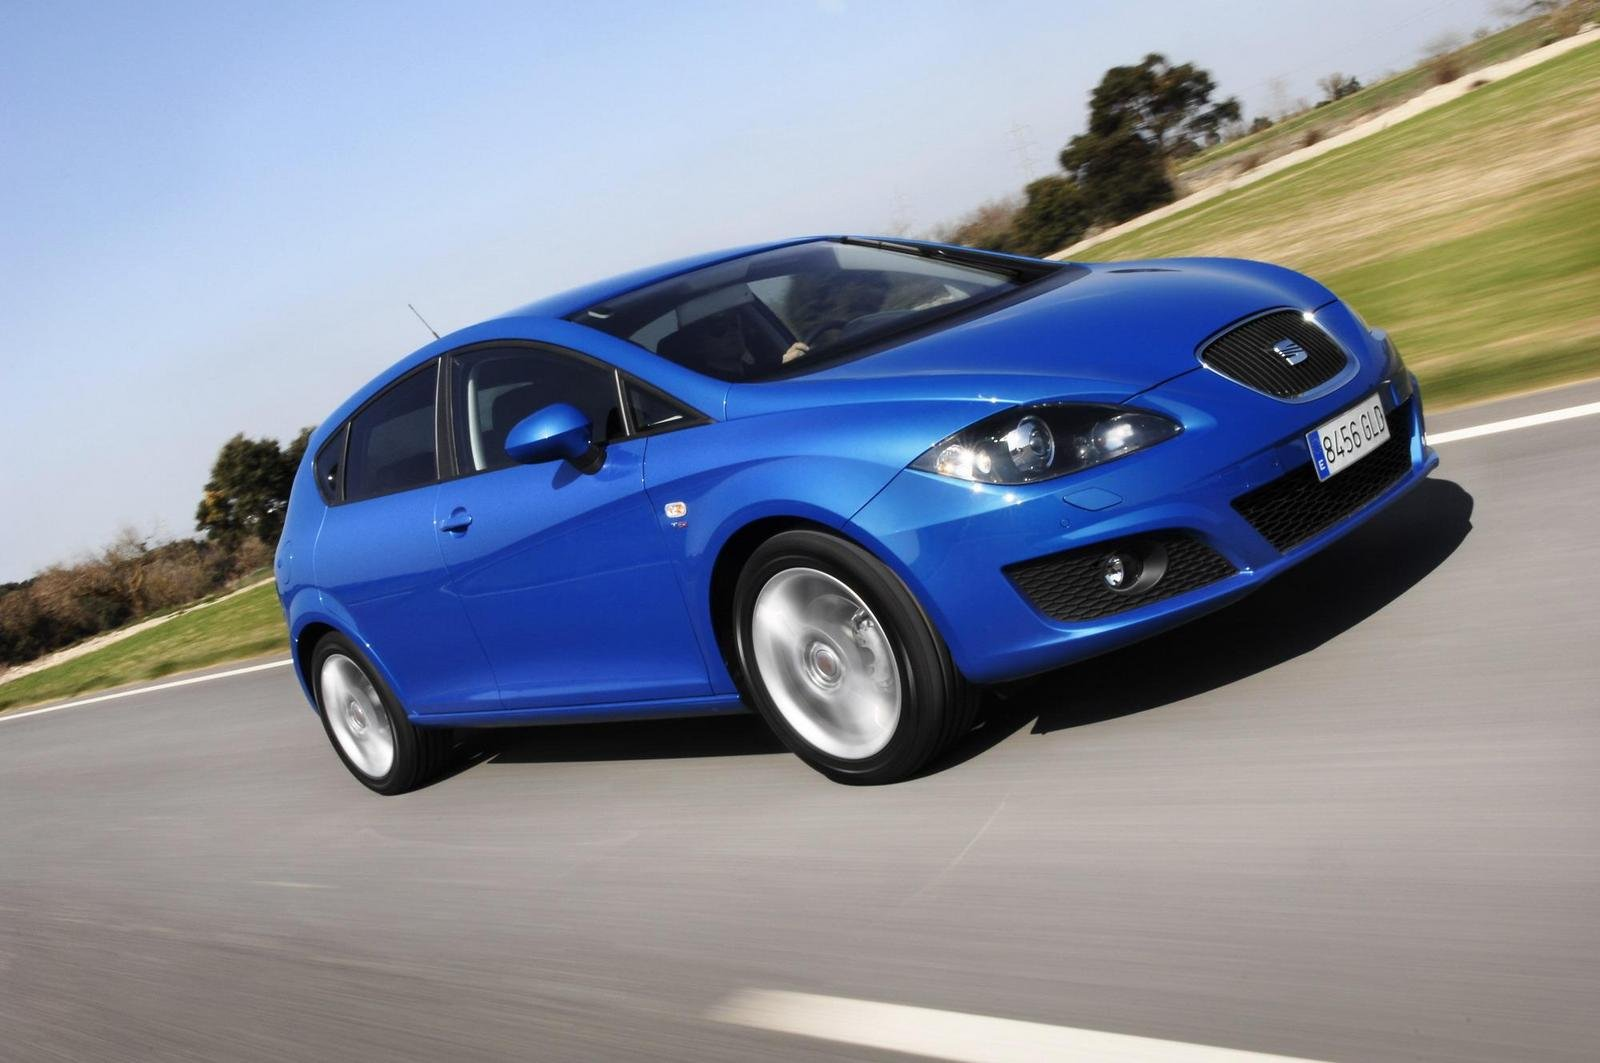 2009 seat leon picture 292754 car review top speed. Black Bedroom Furniture Sets. Home Design Ideas